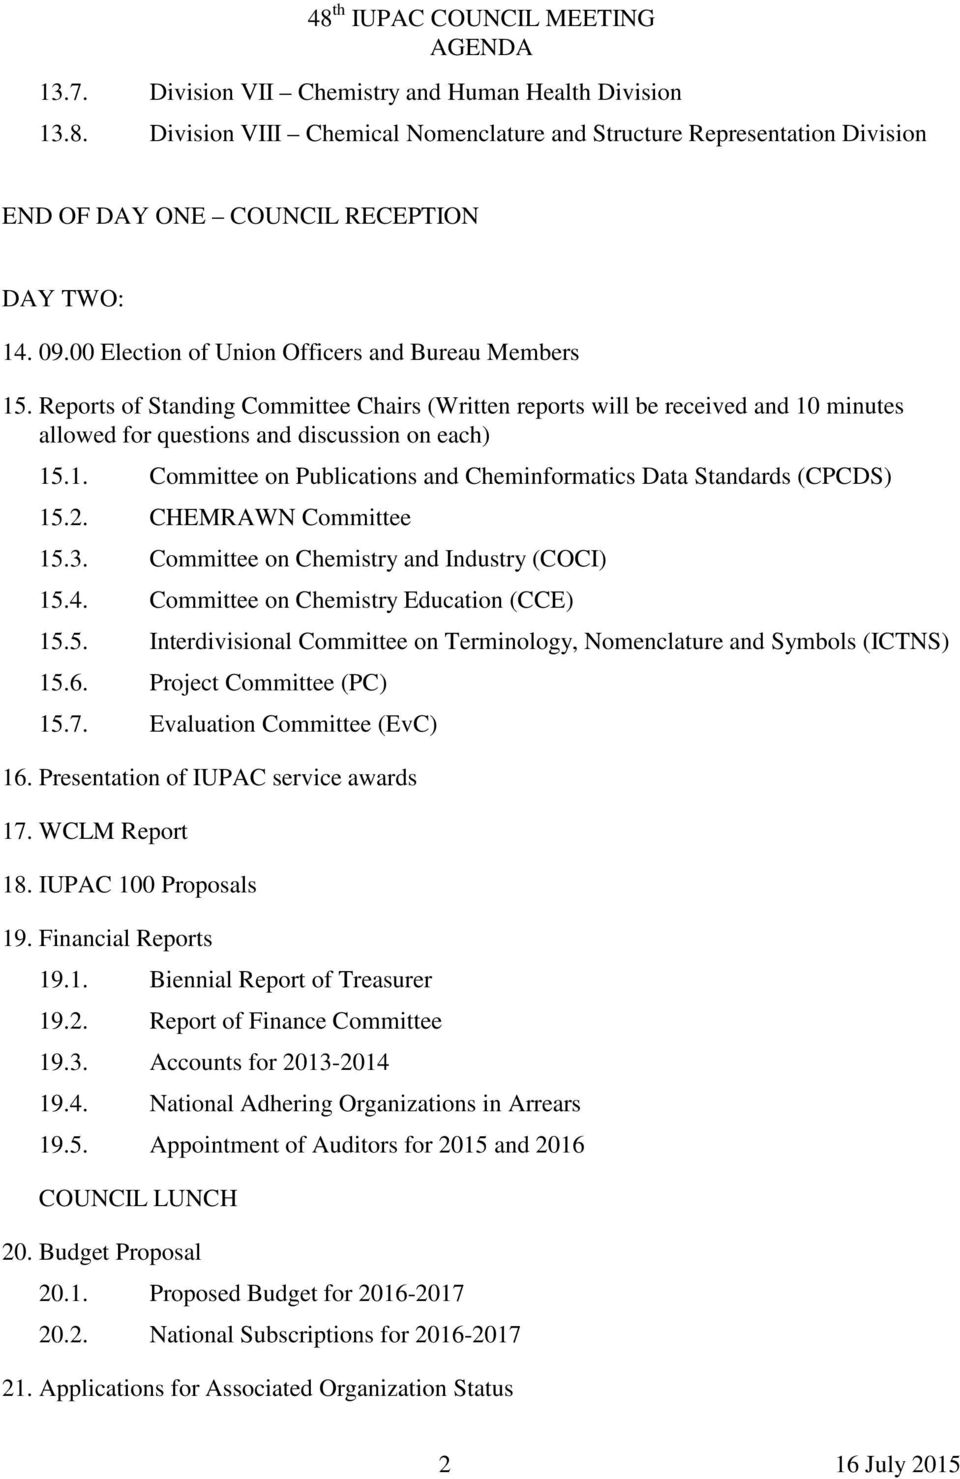 2. CHEMRAWN Committee 15.3. Committee on Chemistry and Industry (COCI) 15.4. Committee on Chemistry Education (CCE) 15.5. Interdivisional Committee on Terminology, Nomenclature and Symbols (ICTNS) 15.